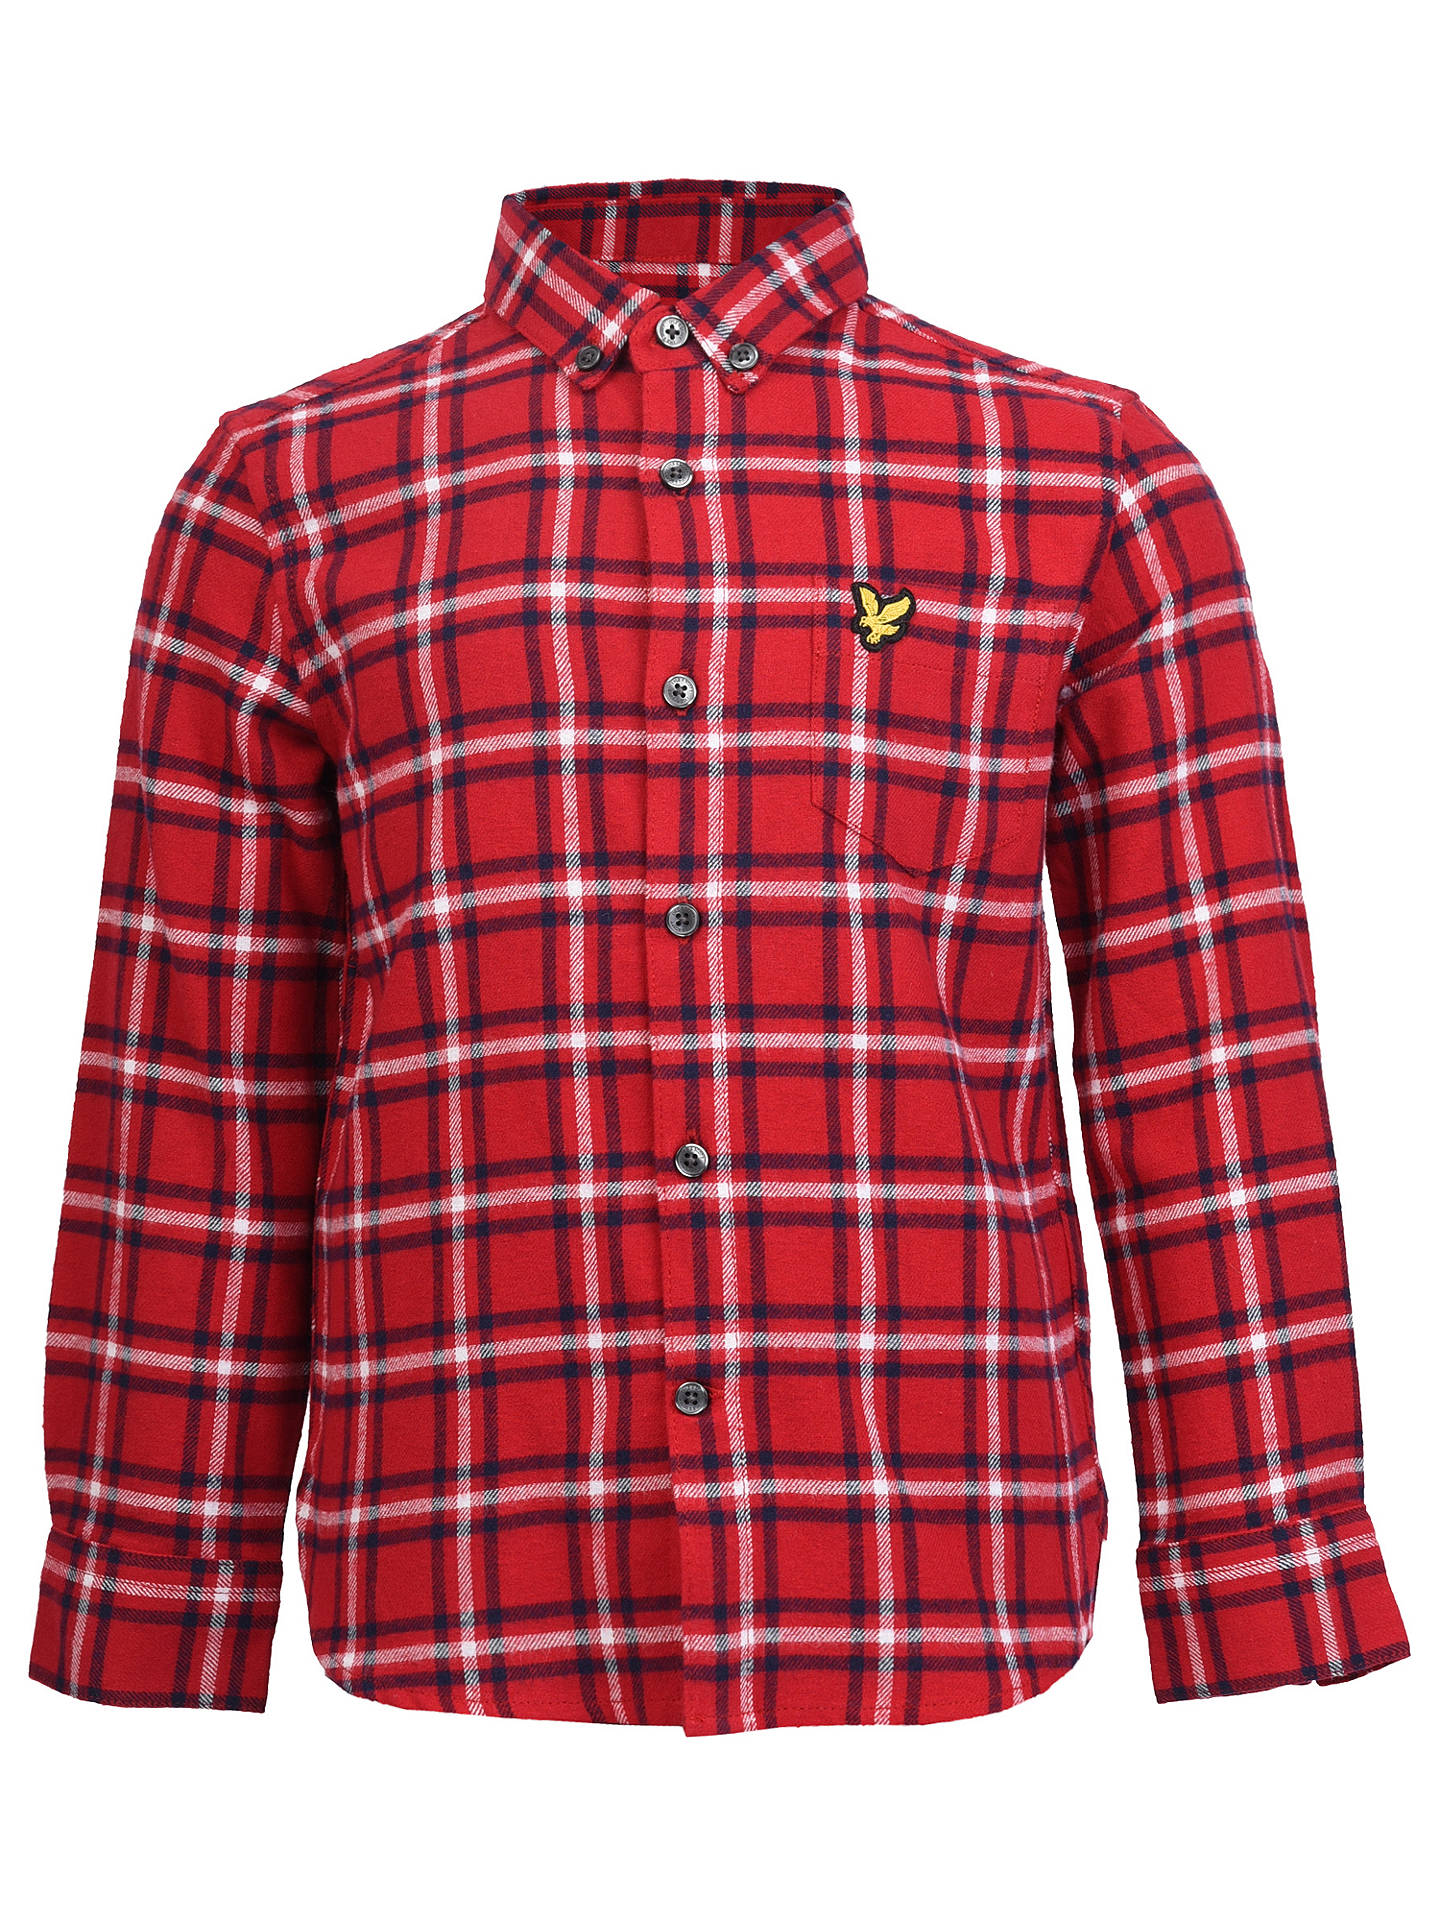 4bc58d22f Buy Lyle & Scott Boys' Flannel Shirt, Red, 8 years Online at johnlewis ...